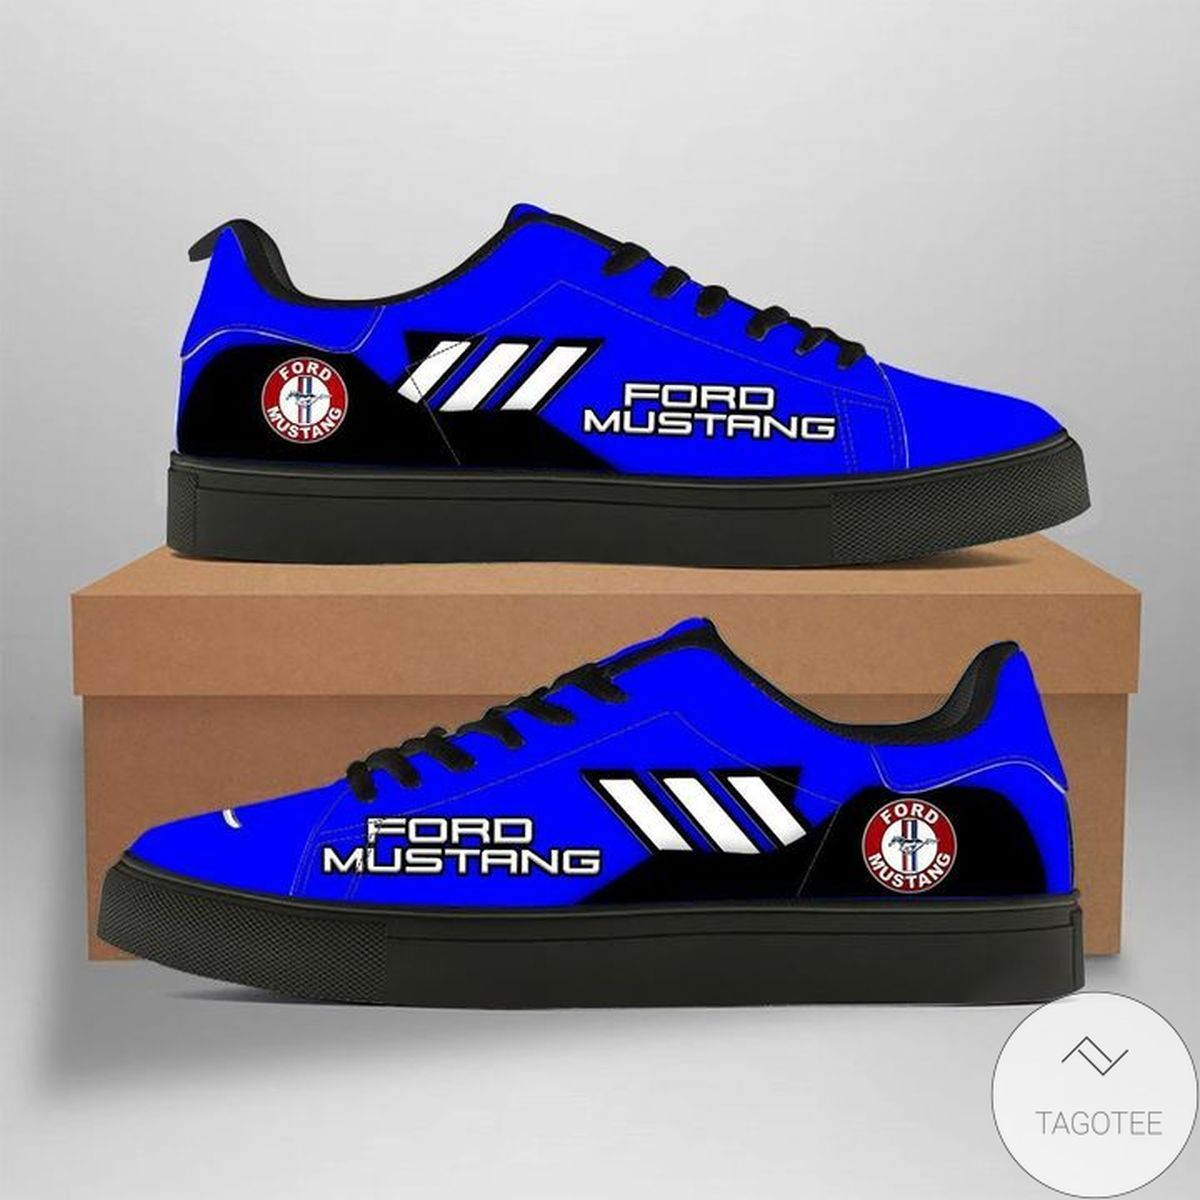 Ford Mustang Blue Stan Smith Shoes